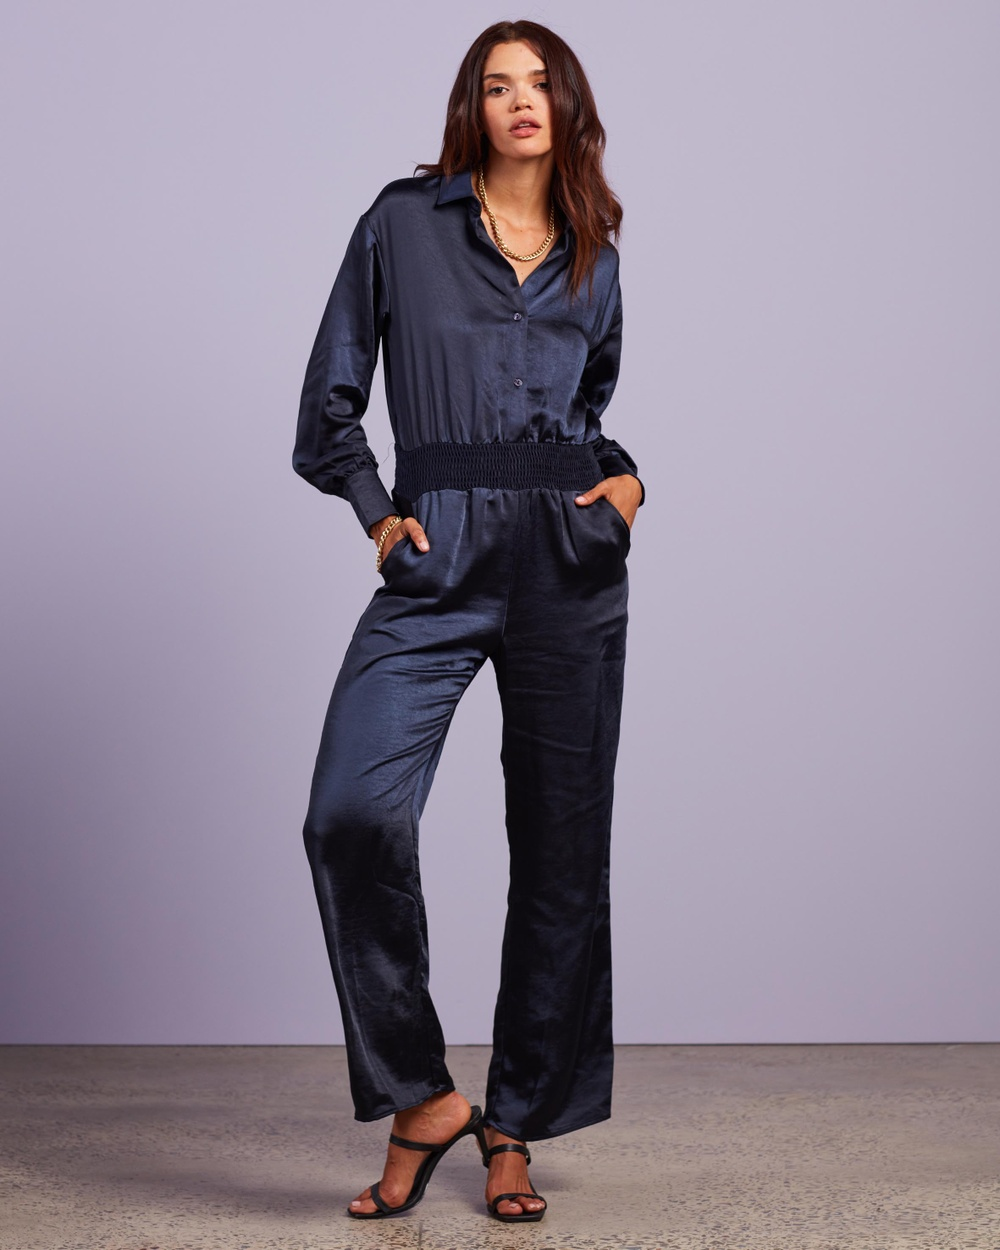 4th & Reckless Gaia Jumpsuit Jumpsuits Playsuits Navy